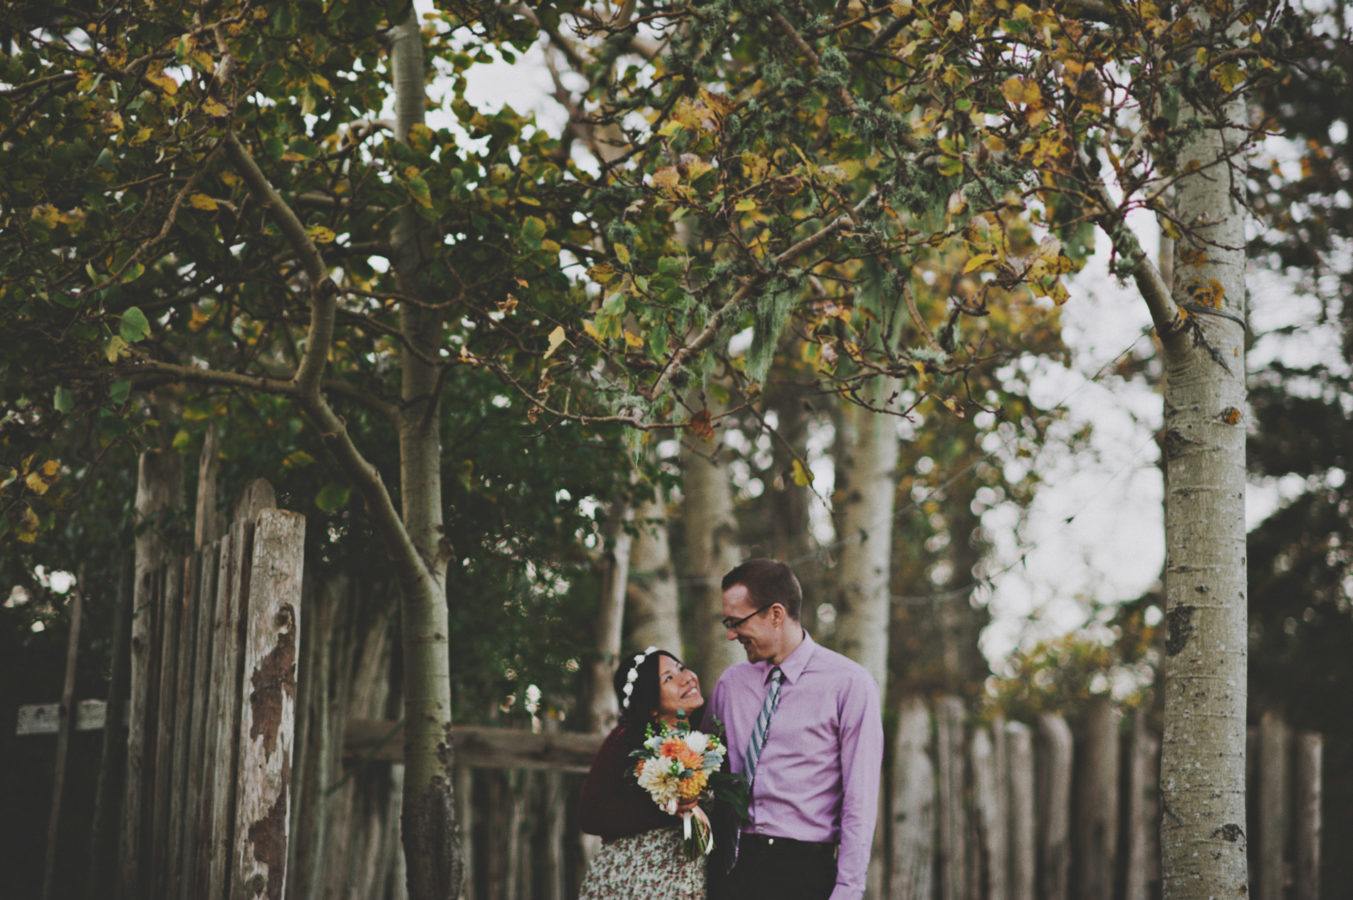 mixed race couple standing in front of a rustic fence smiling at one another on their wedding day